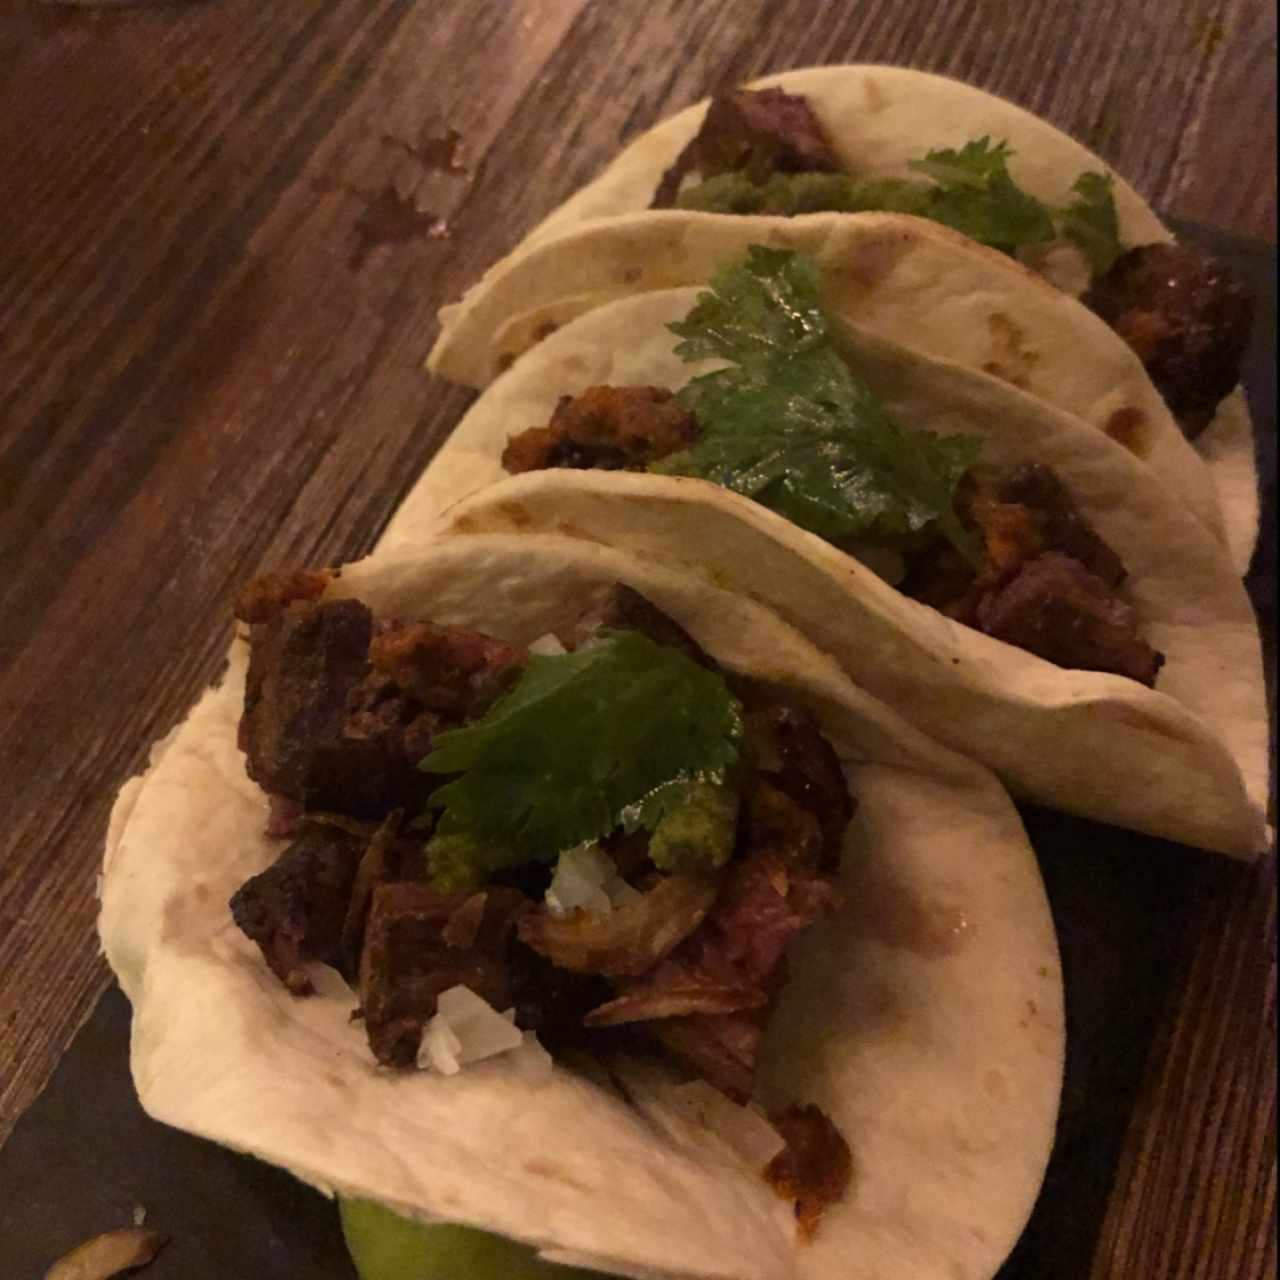 SMALL PLATES - Skirt Steak Tacos